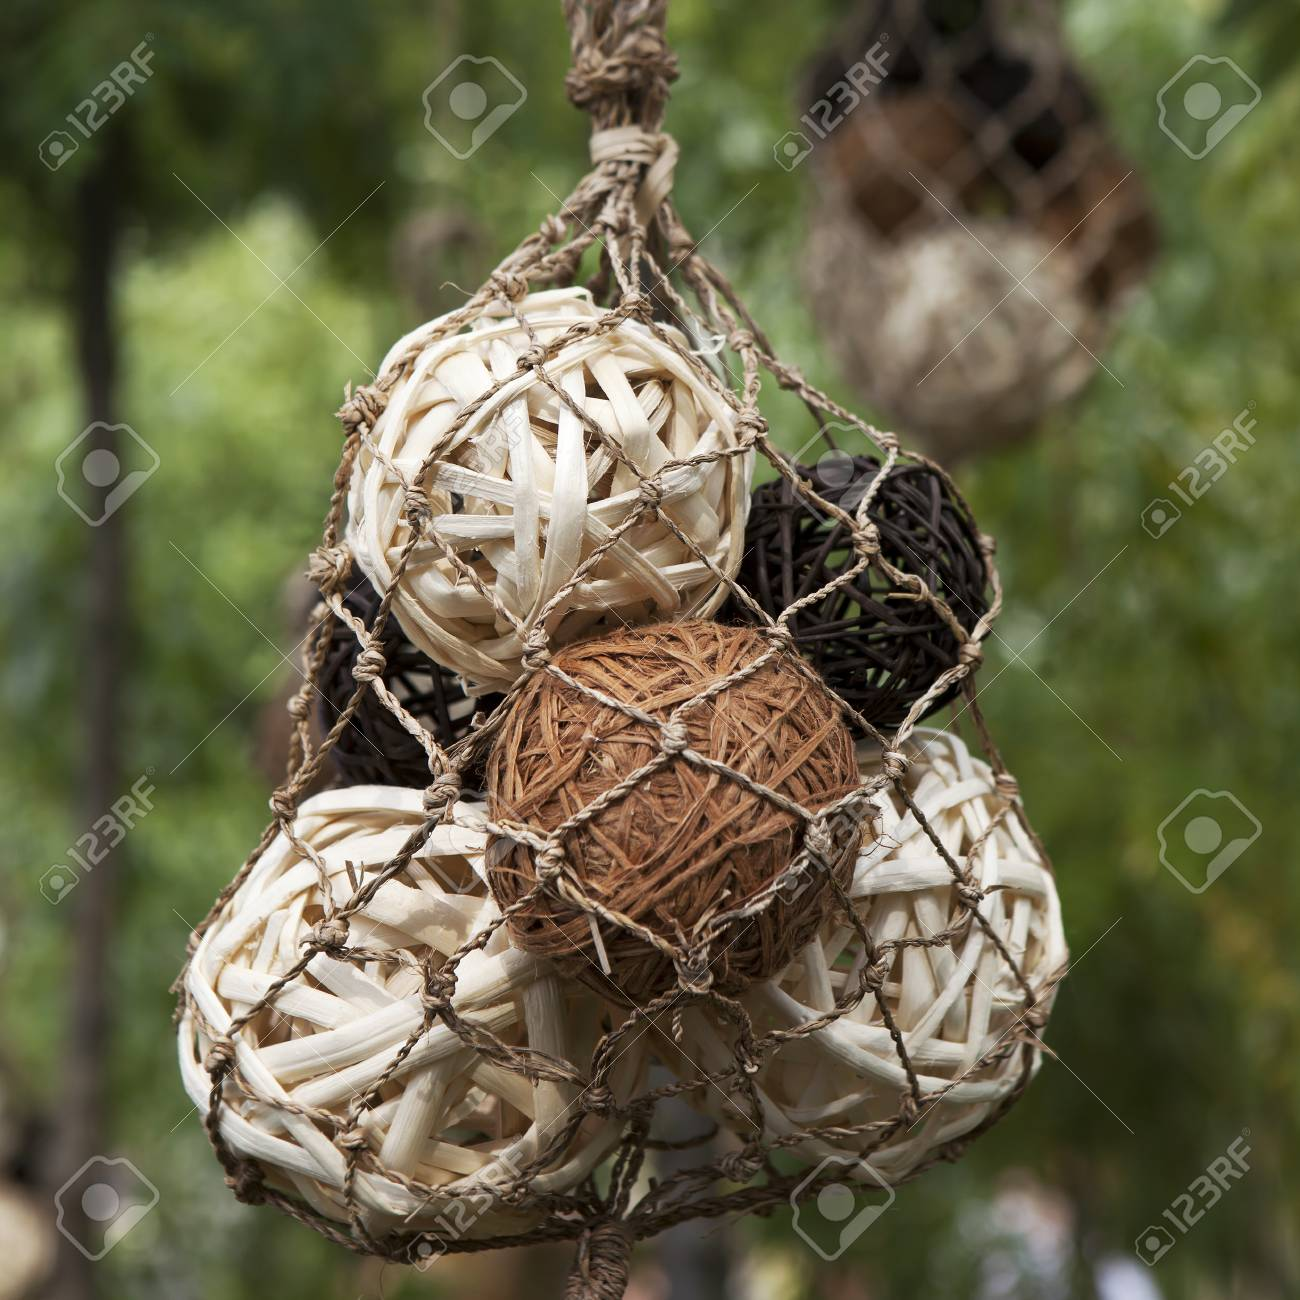 Decoration Of Garden.White And Brown Balls Of Vines Hanging In ...